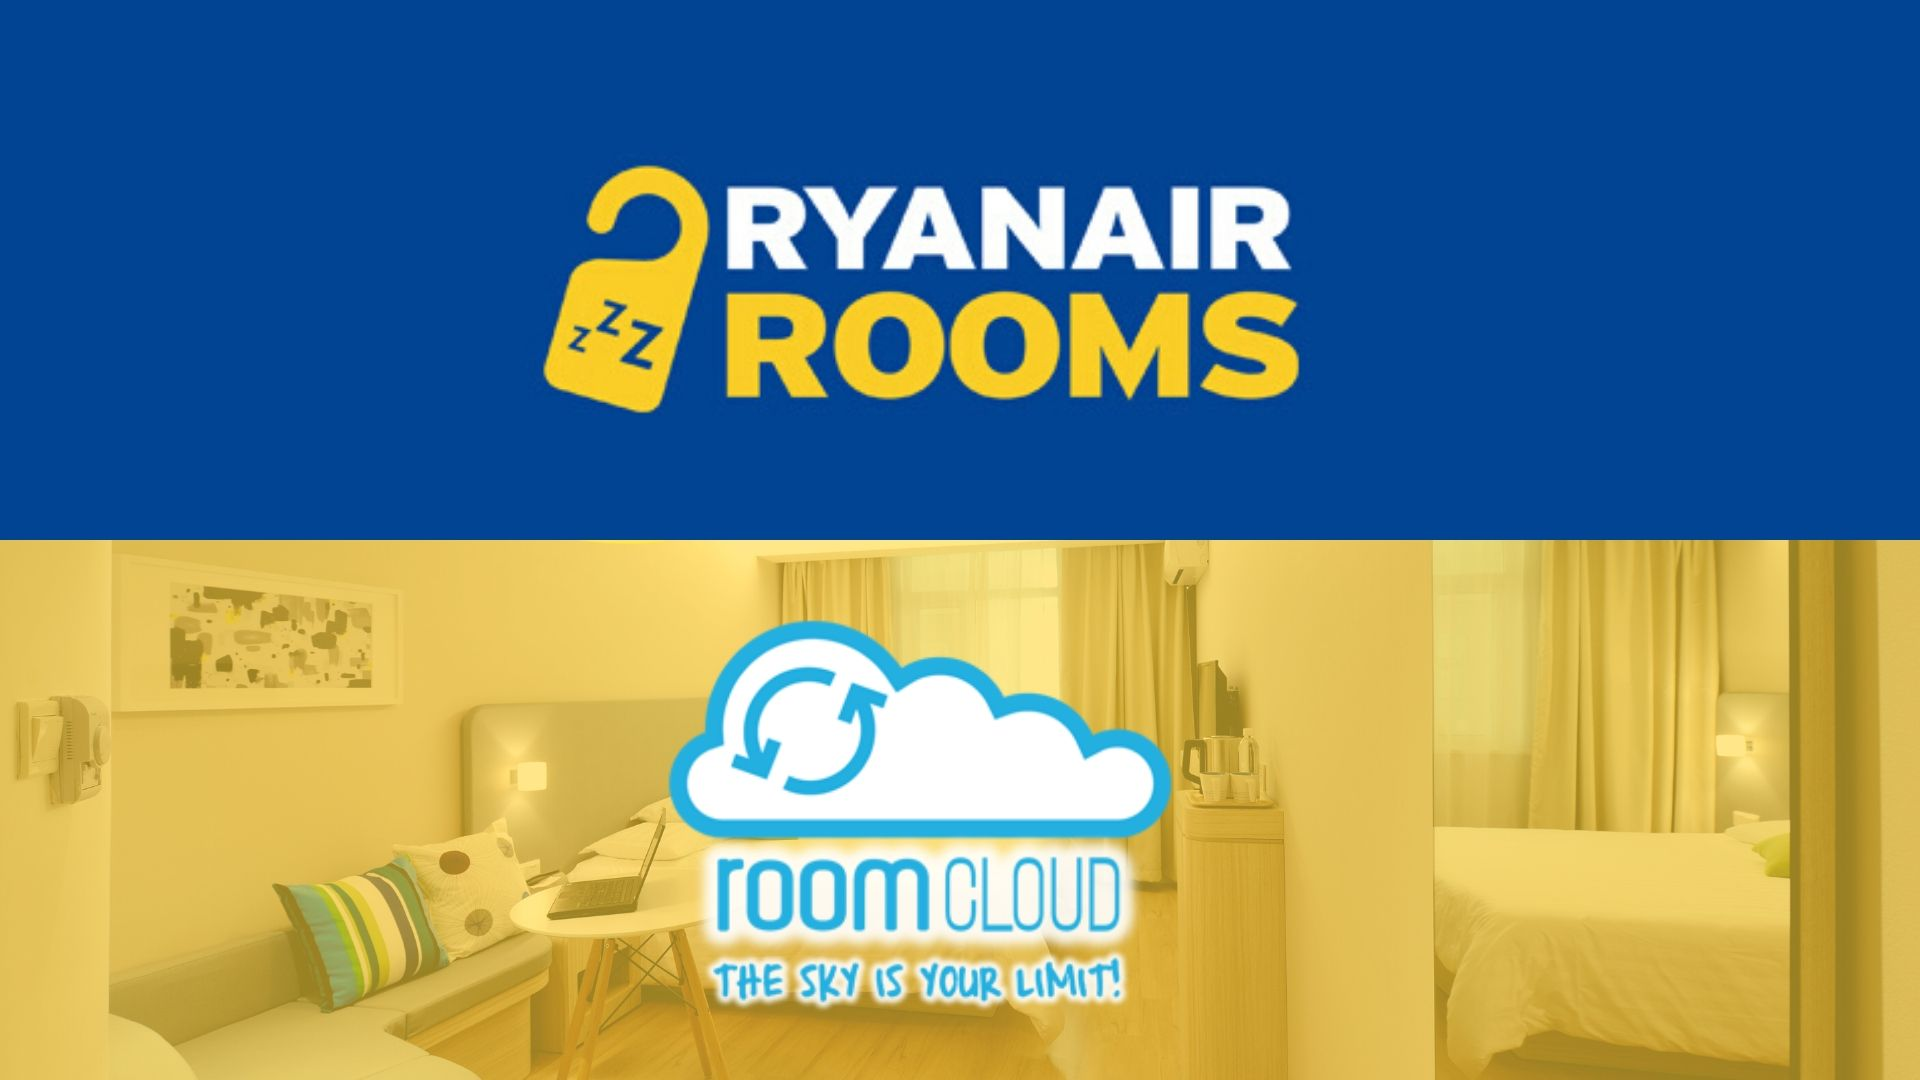 RoomCloud is integrated with Ryanair Rooms